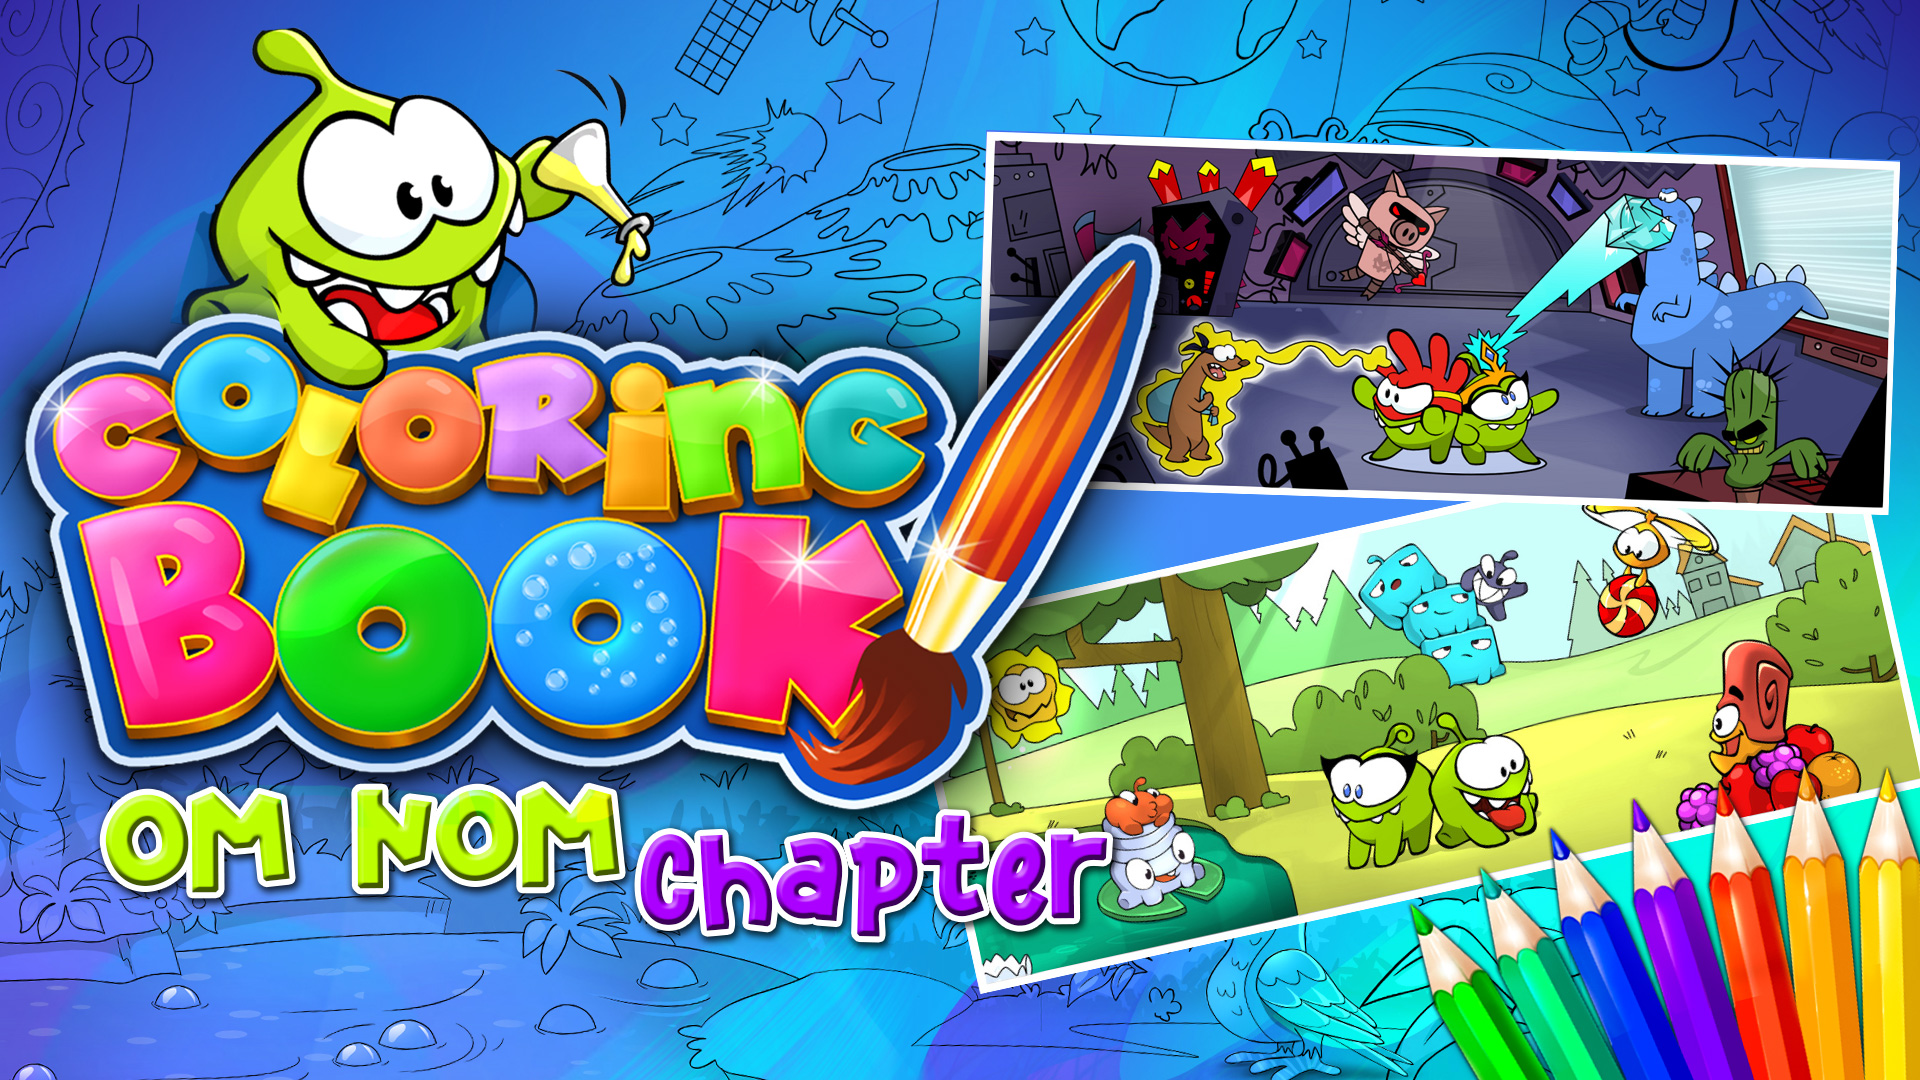 Om Nom Chapter 13 New Drawings Labo Nommies Supernom Coloring Book Nintendo Switch Nintendo